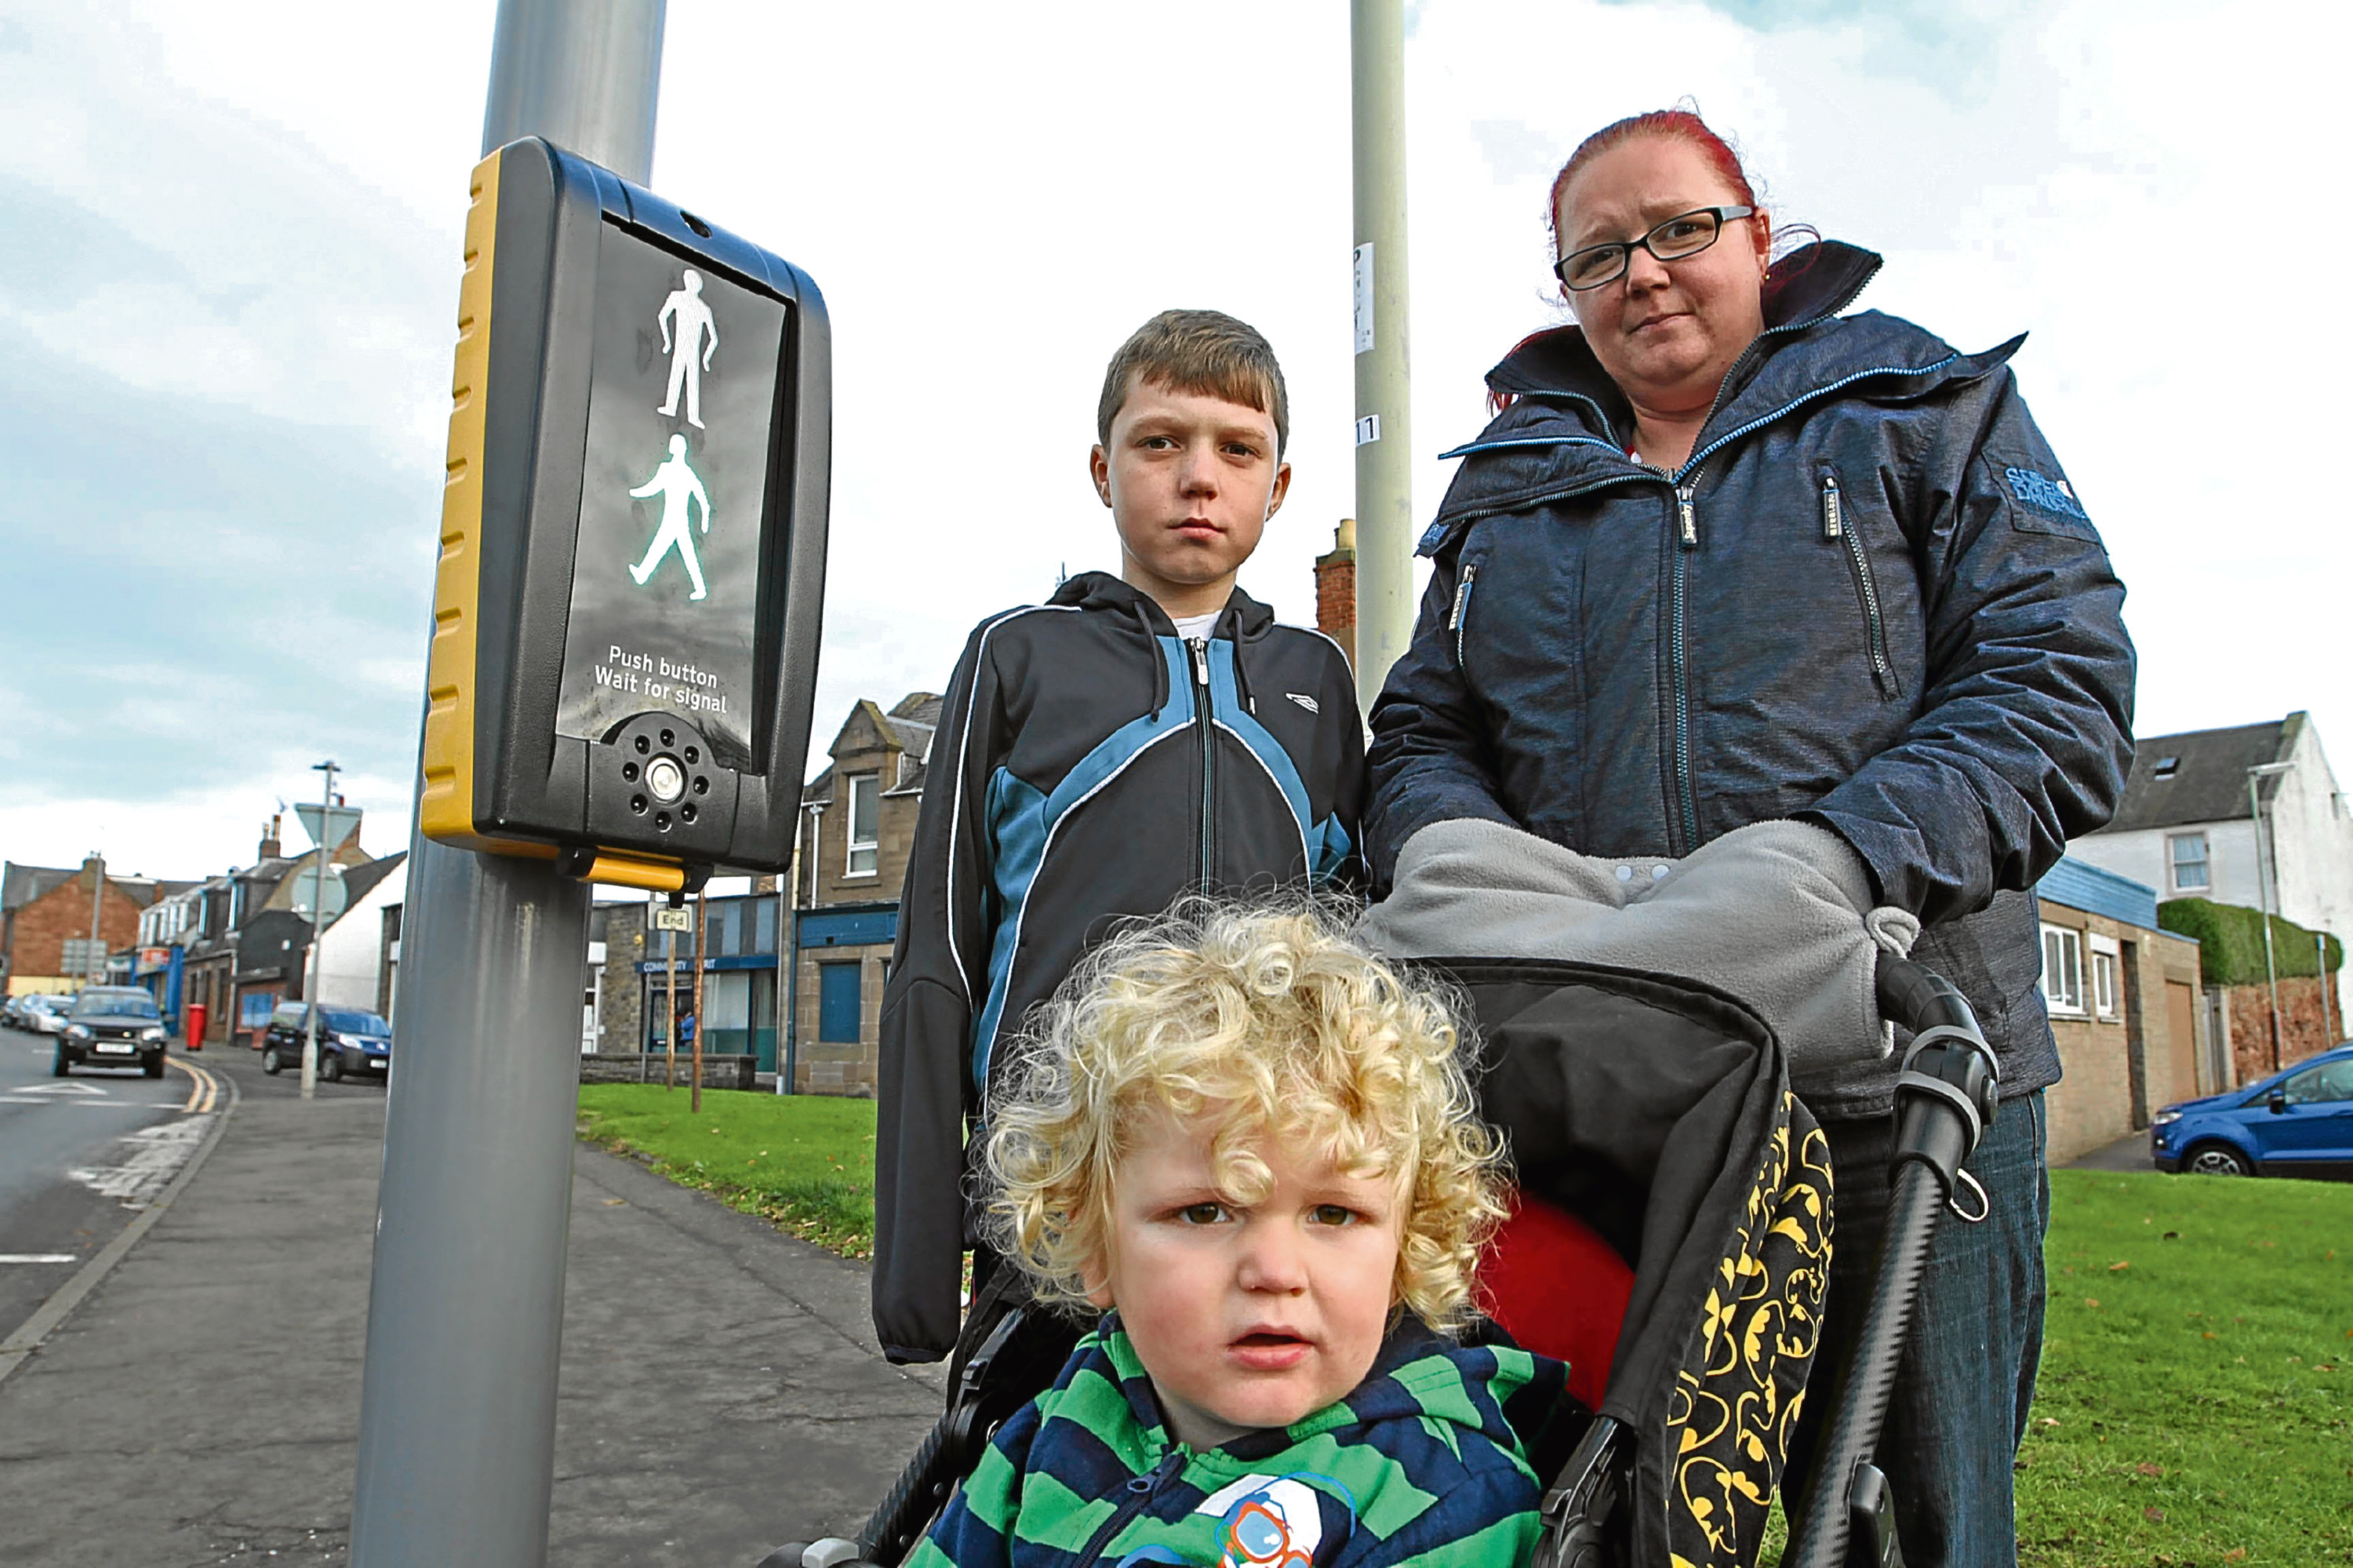 Mandy Laidlaw and her sons Jak and Blake at the crossing where the incident happened.